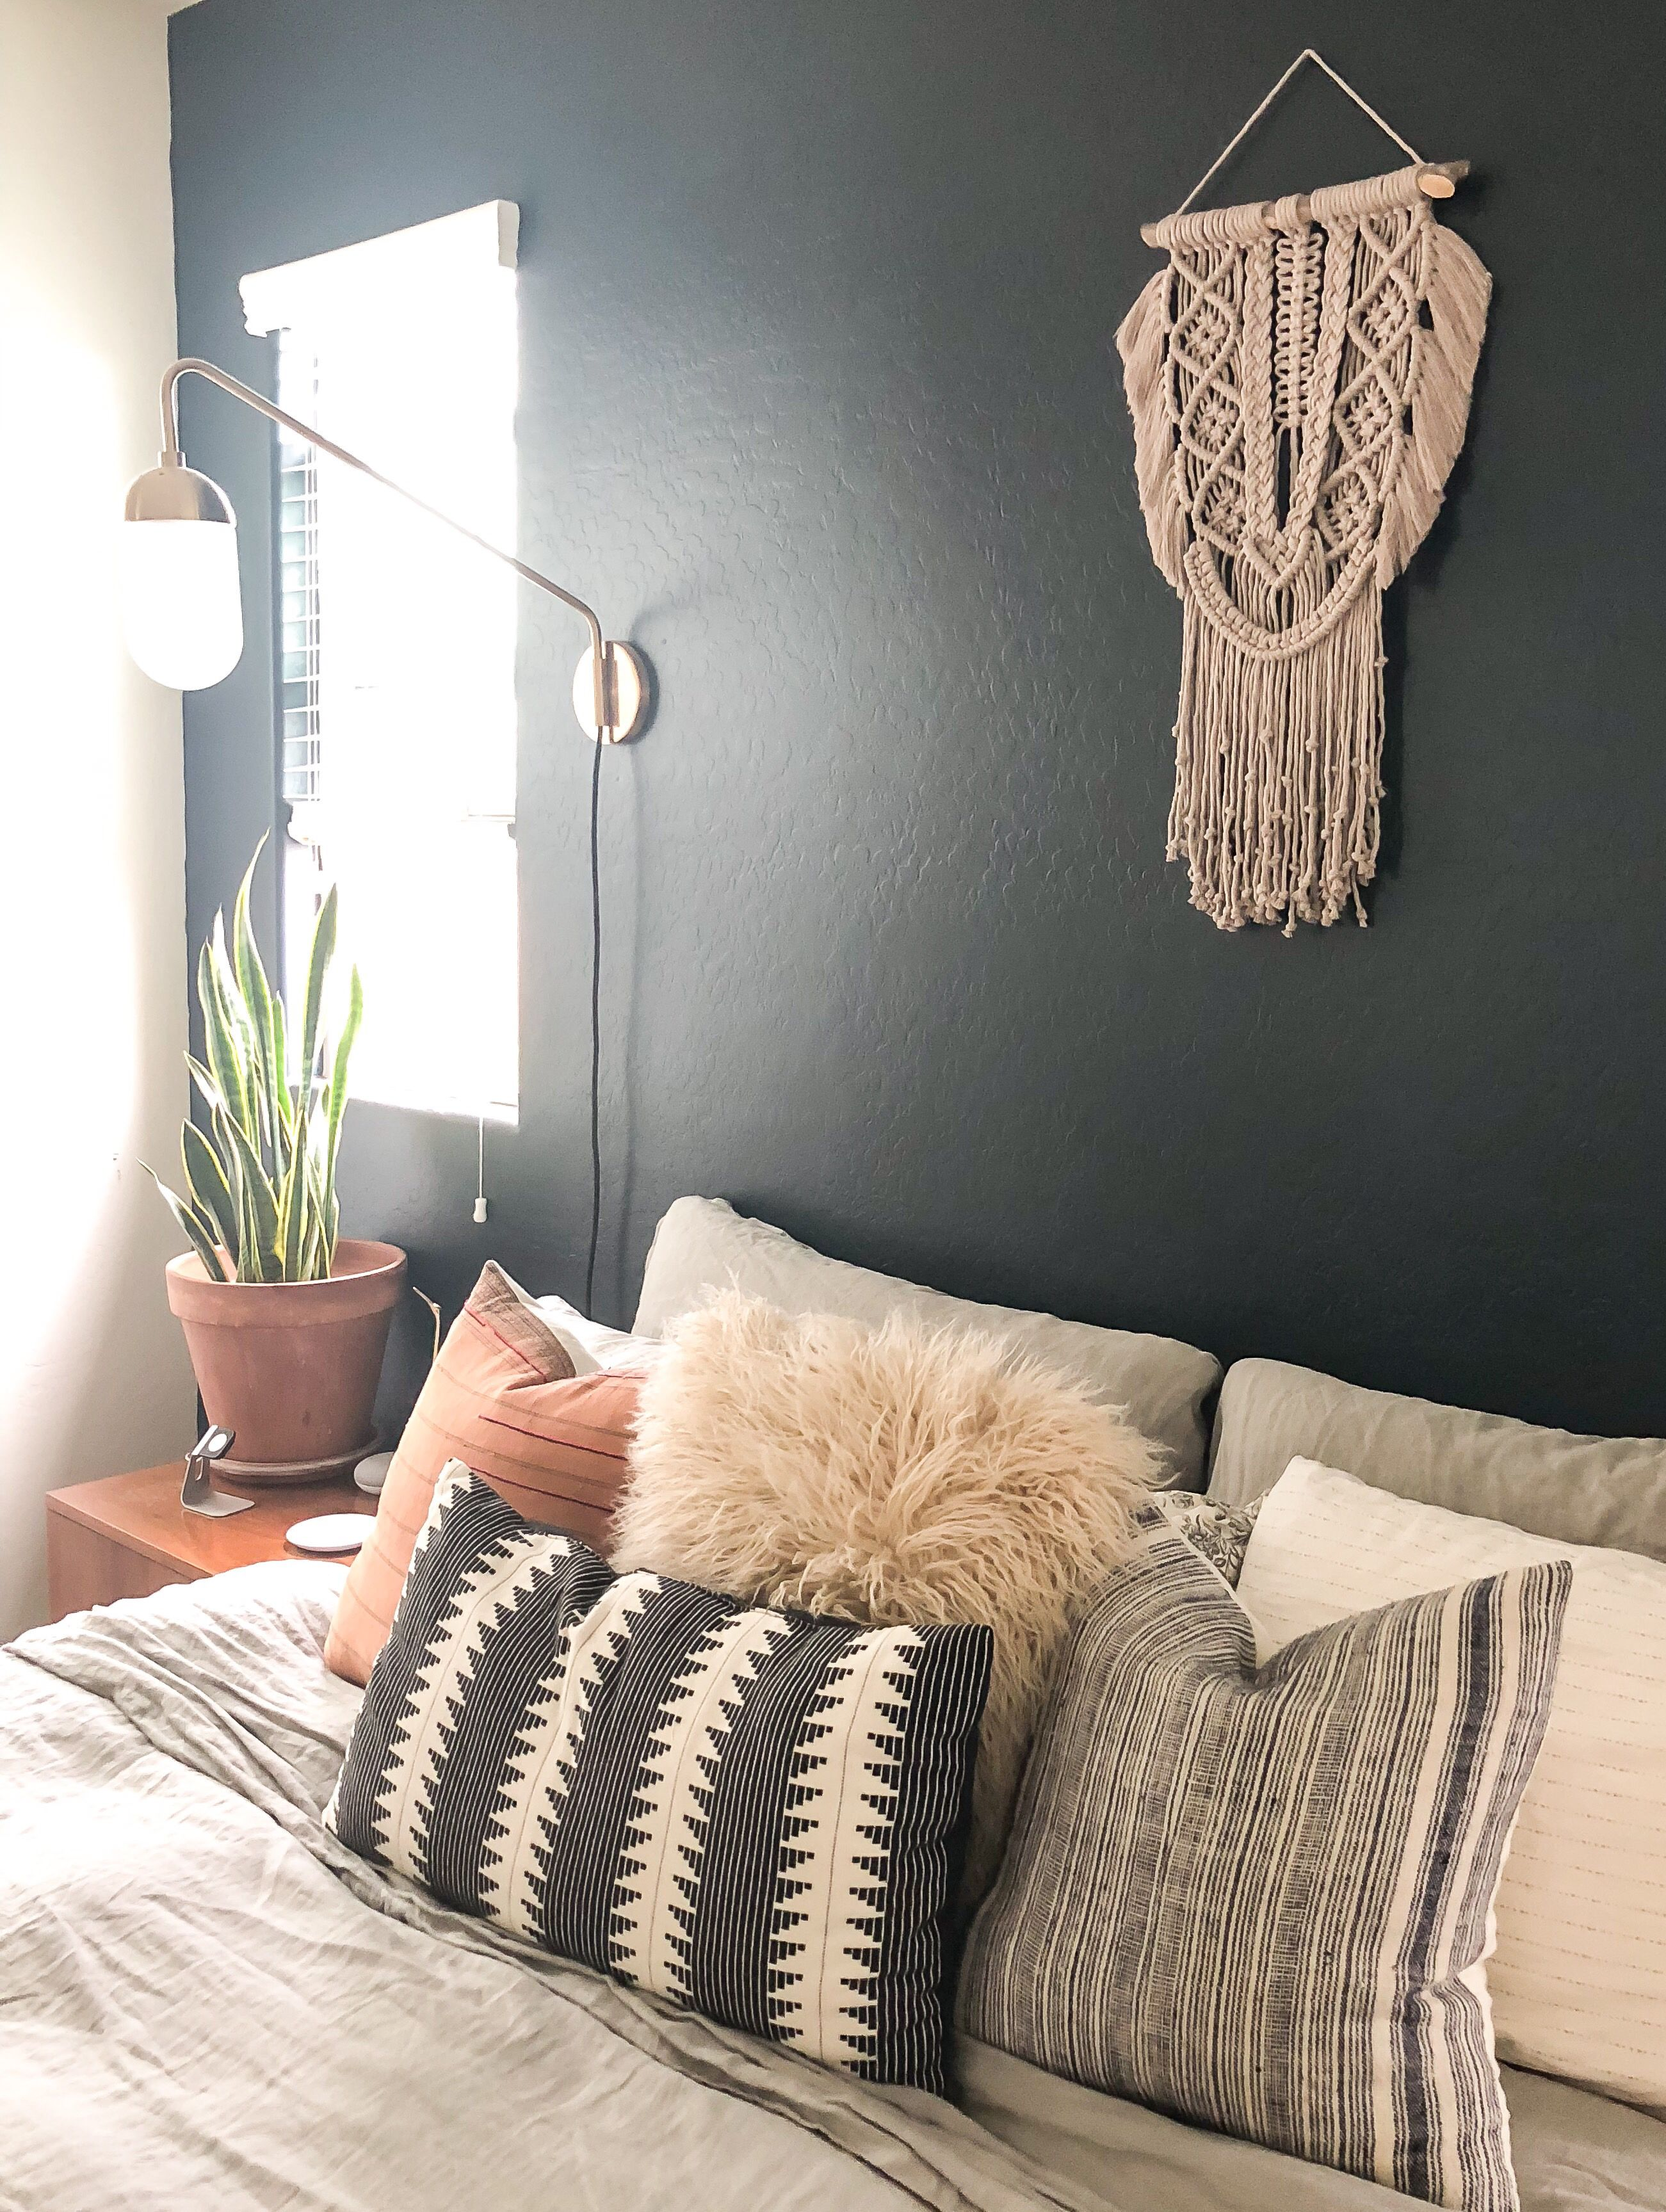 Gray macrame wall hanging with fringe. | Bedroom wall decor ...